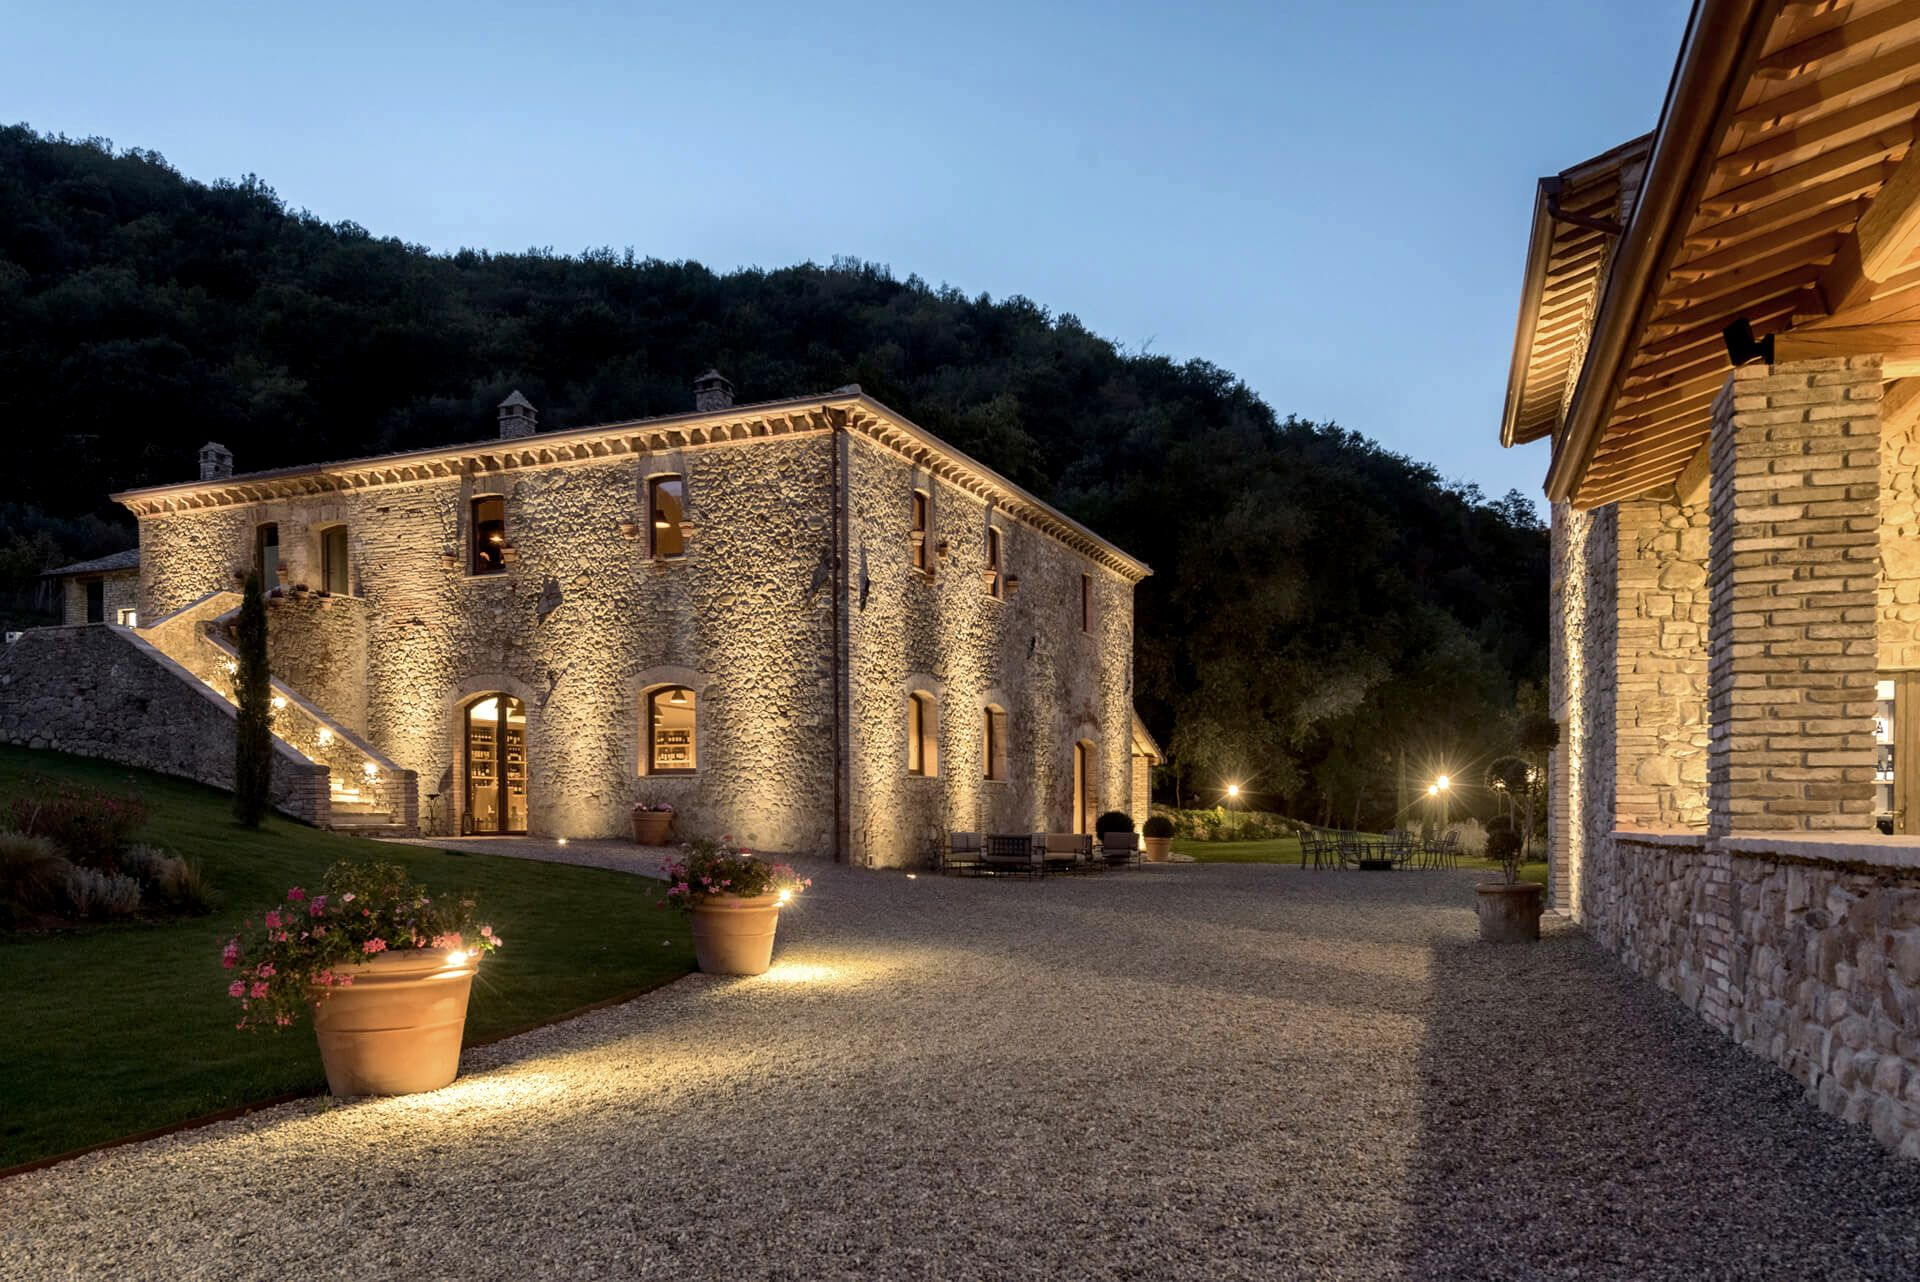 Grazing Light To Enhance The Stone Walls And Highlight